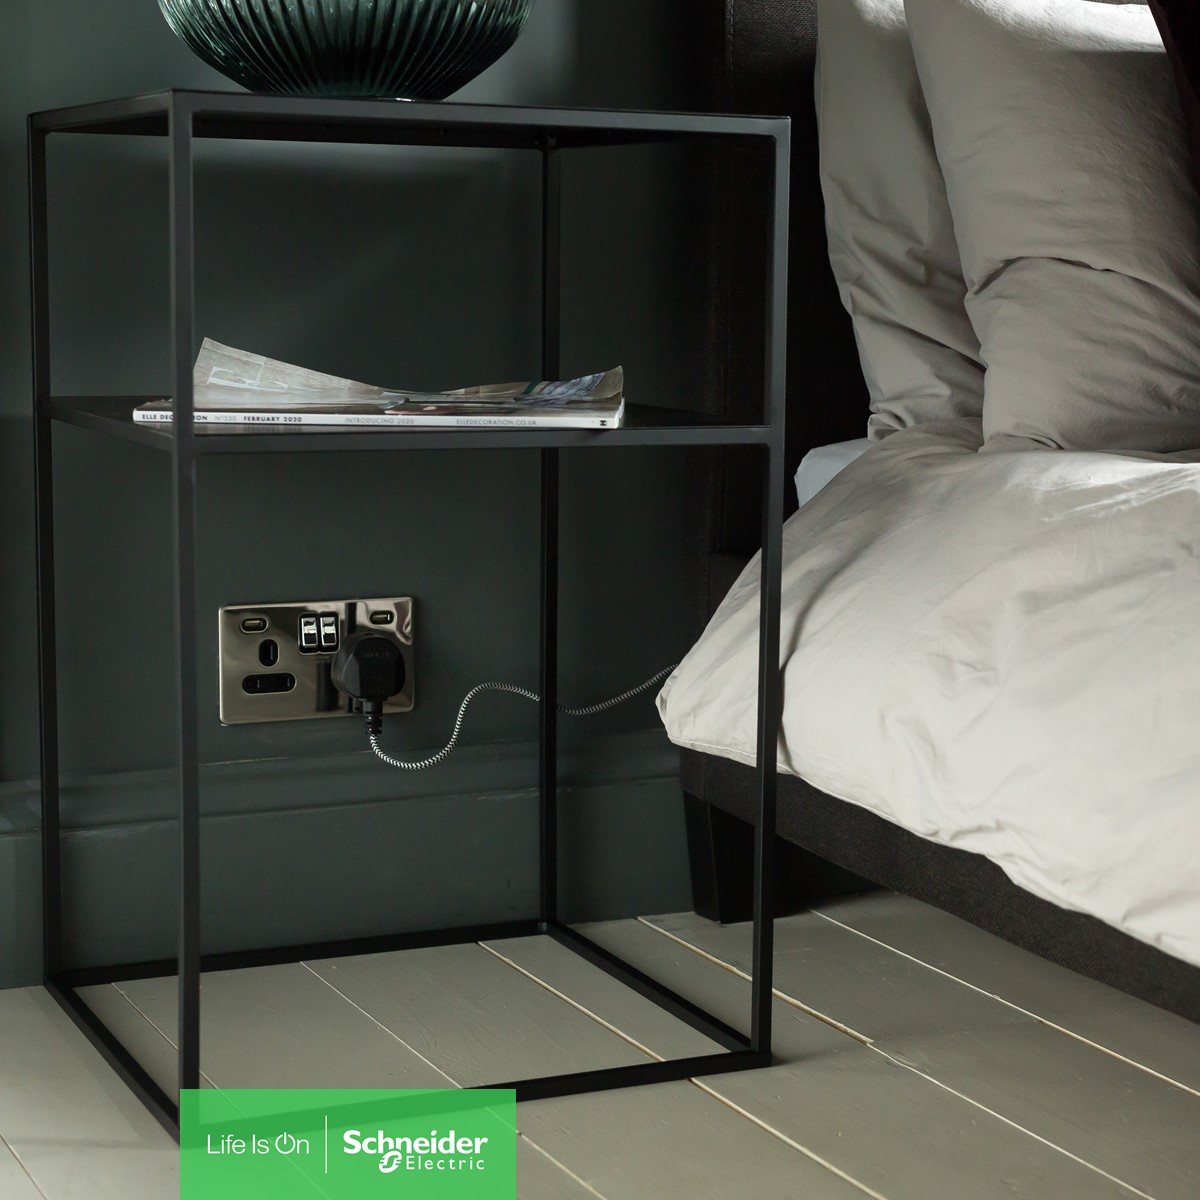 Whether you are looking for an elegant or contemporary twist on traditional designs, our #Ultimate  Range offers high-quality finishes to complete your interior look.  #LifeIsOn   https://www.se.com/uk/en/work/products/product-launch/local/ultimate/  …